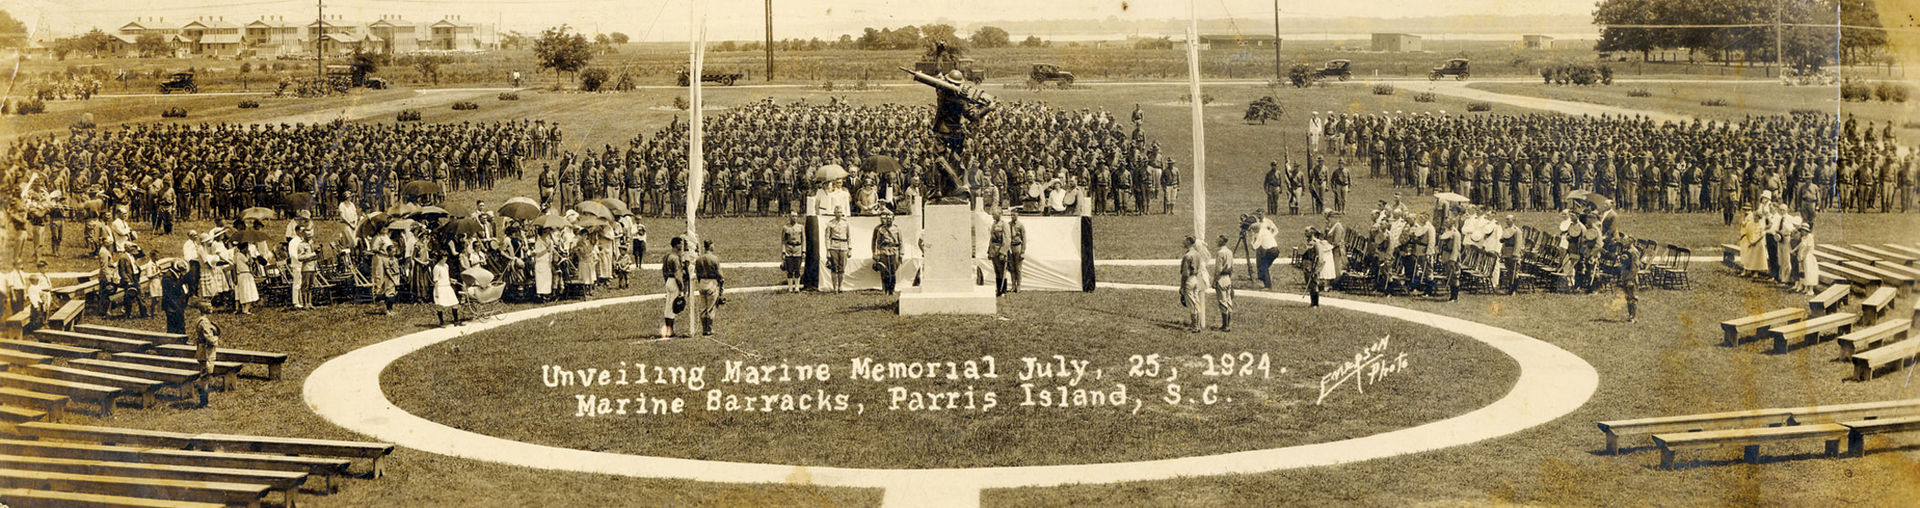 Dedication of the statue, 1924. The statue was moved from this former drill field and now stands in front of the headquarters building.